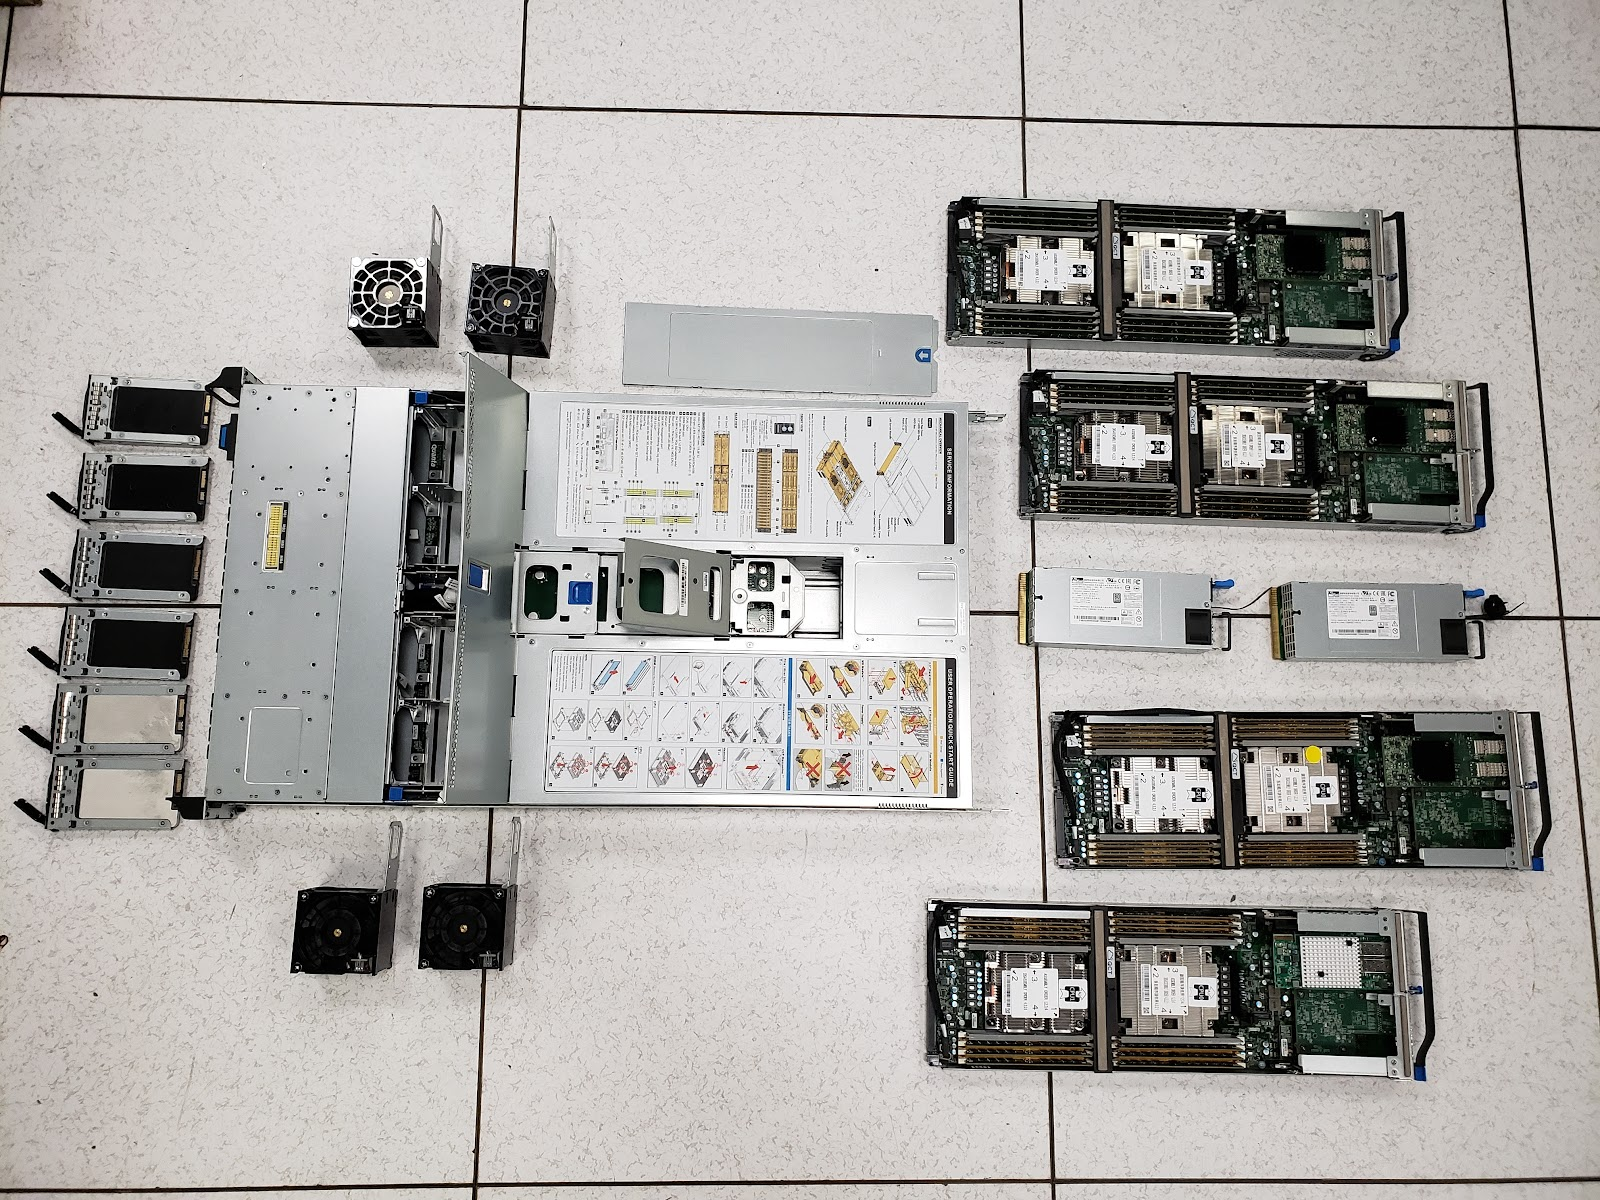 A Tour Inside Cloudflare's G9 Servers